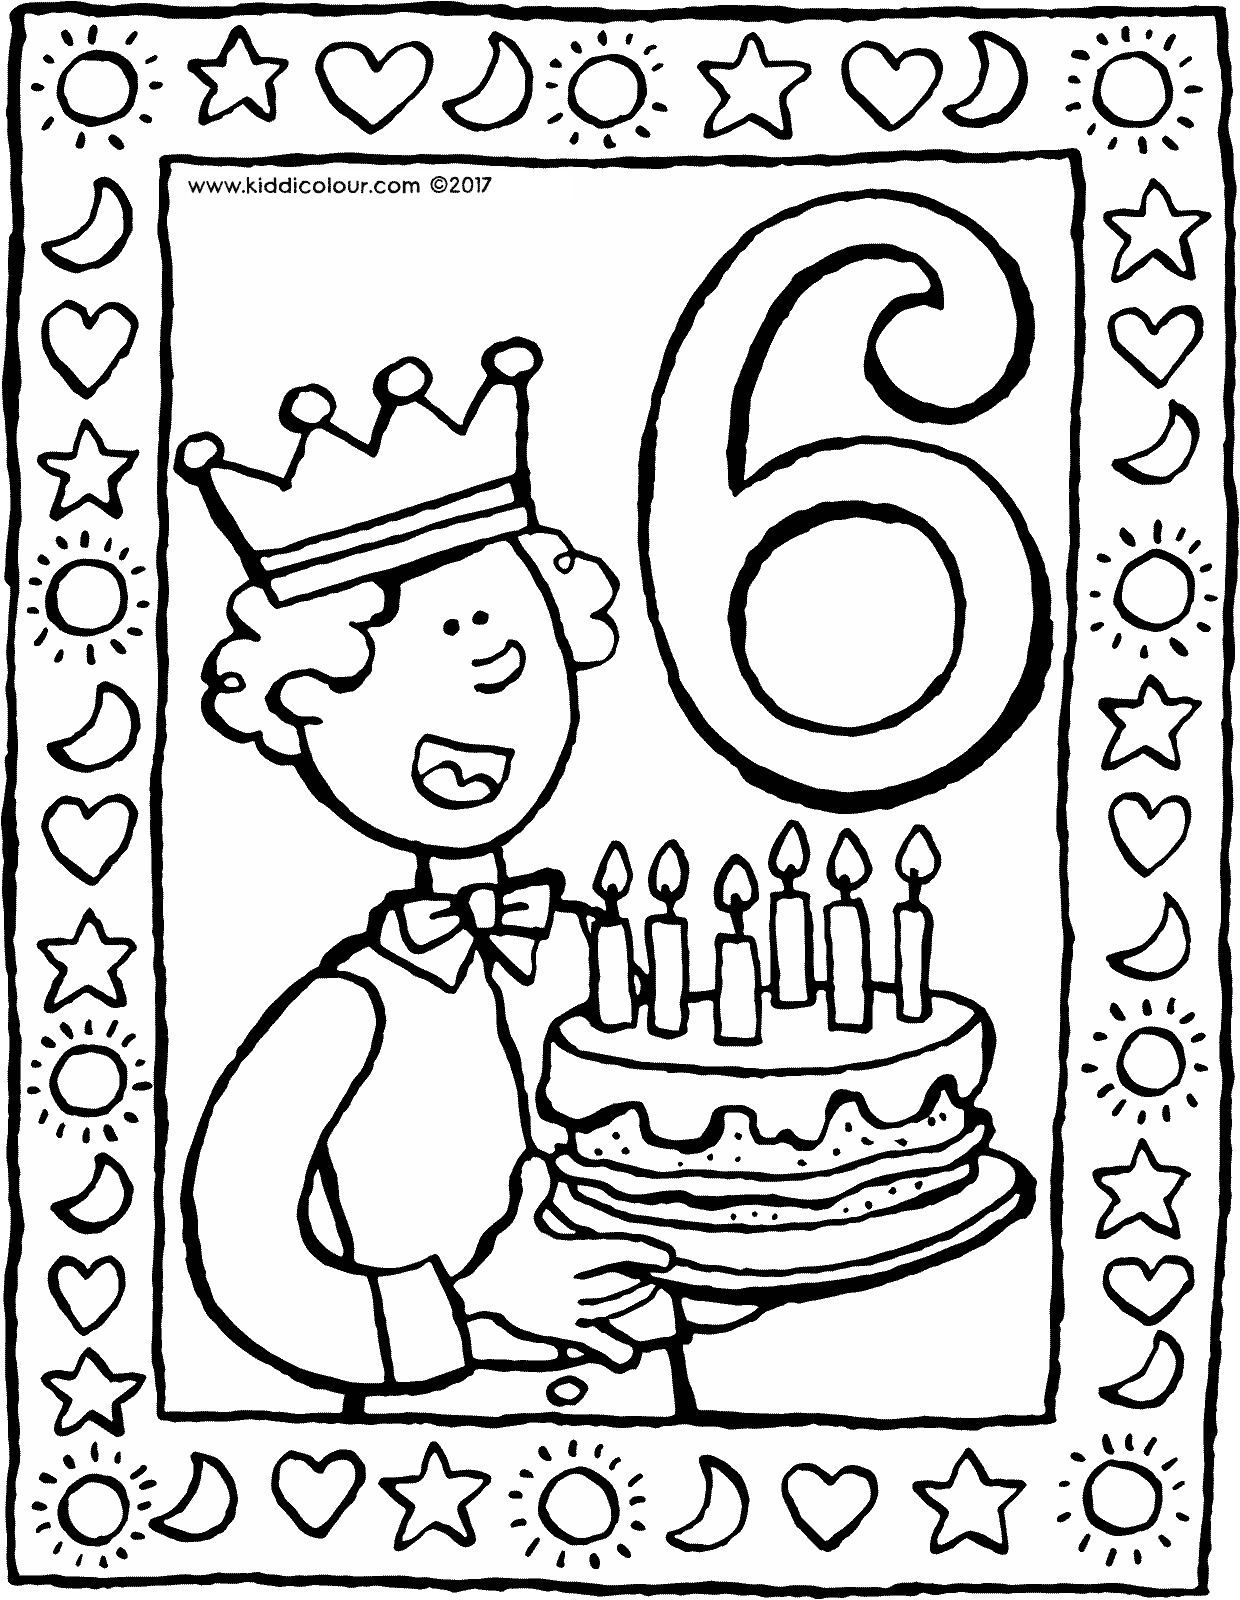 coloring pages 6 year old coloring pages for 6 year olds free download on clipartmag 6 coloring pages year old